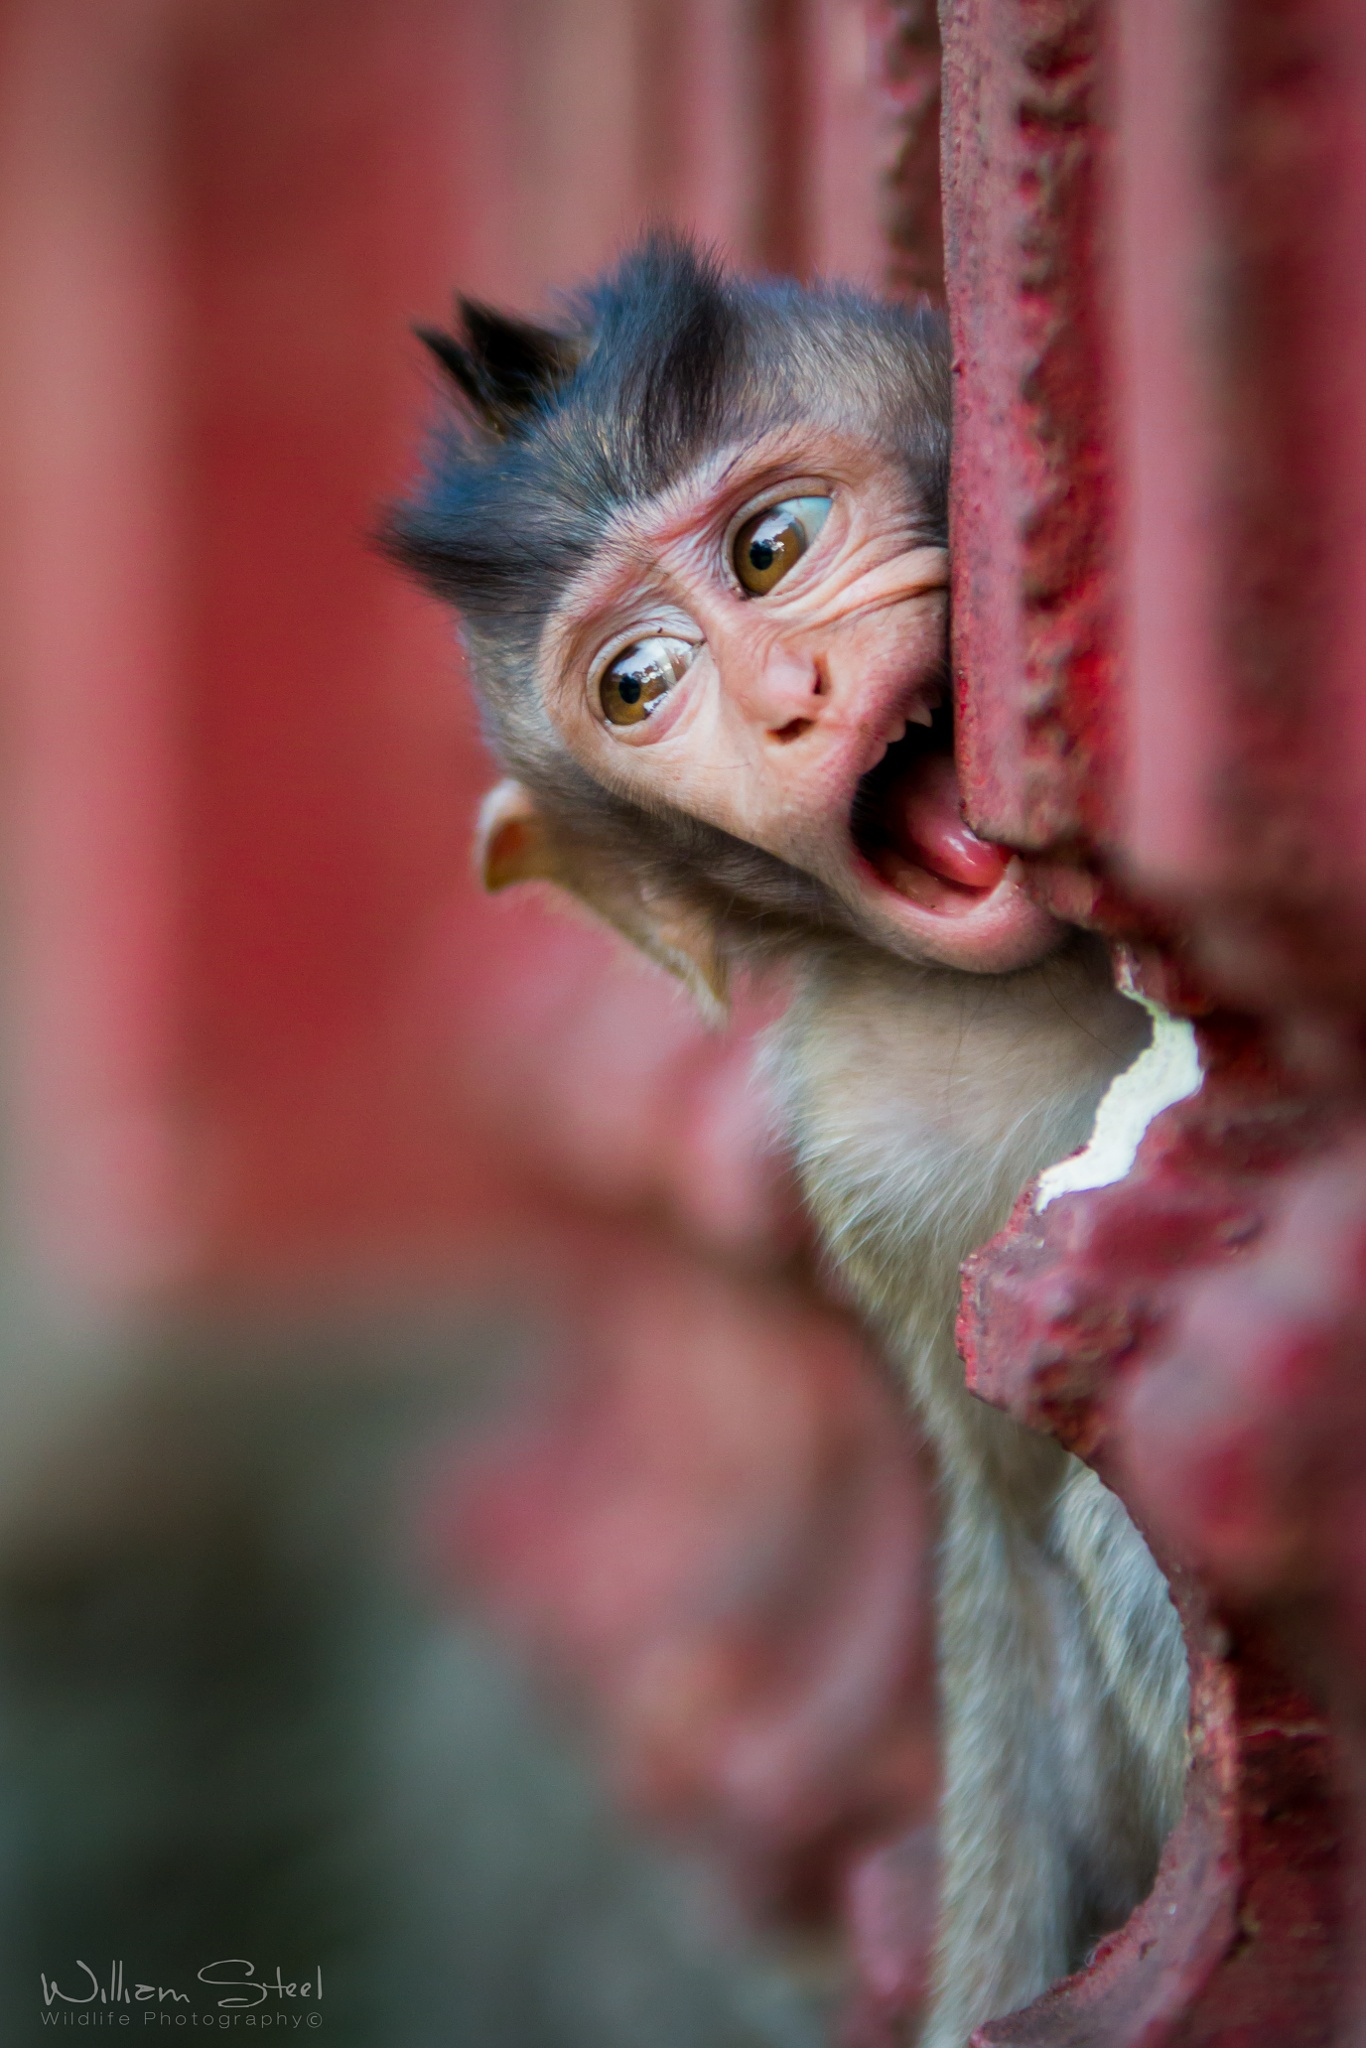 Cute Macaque  by William Steel